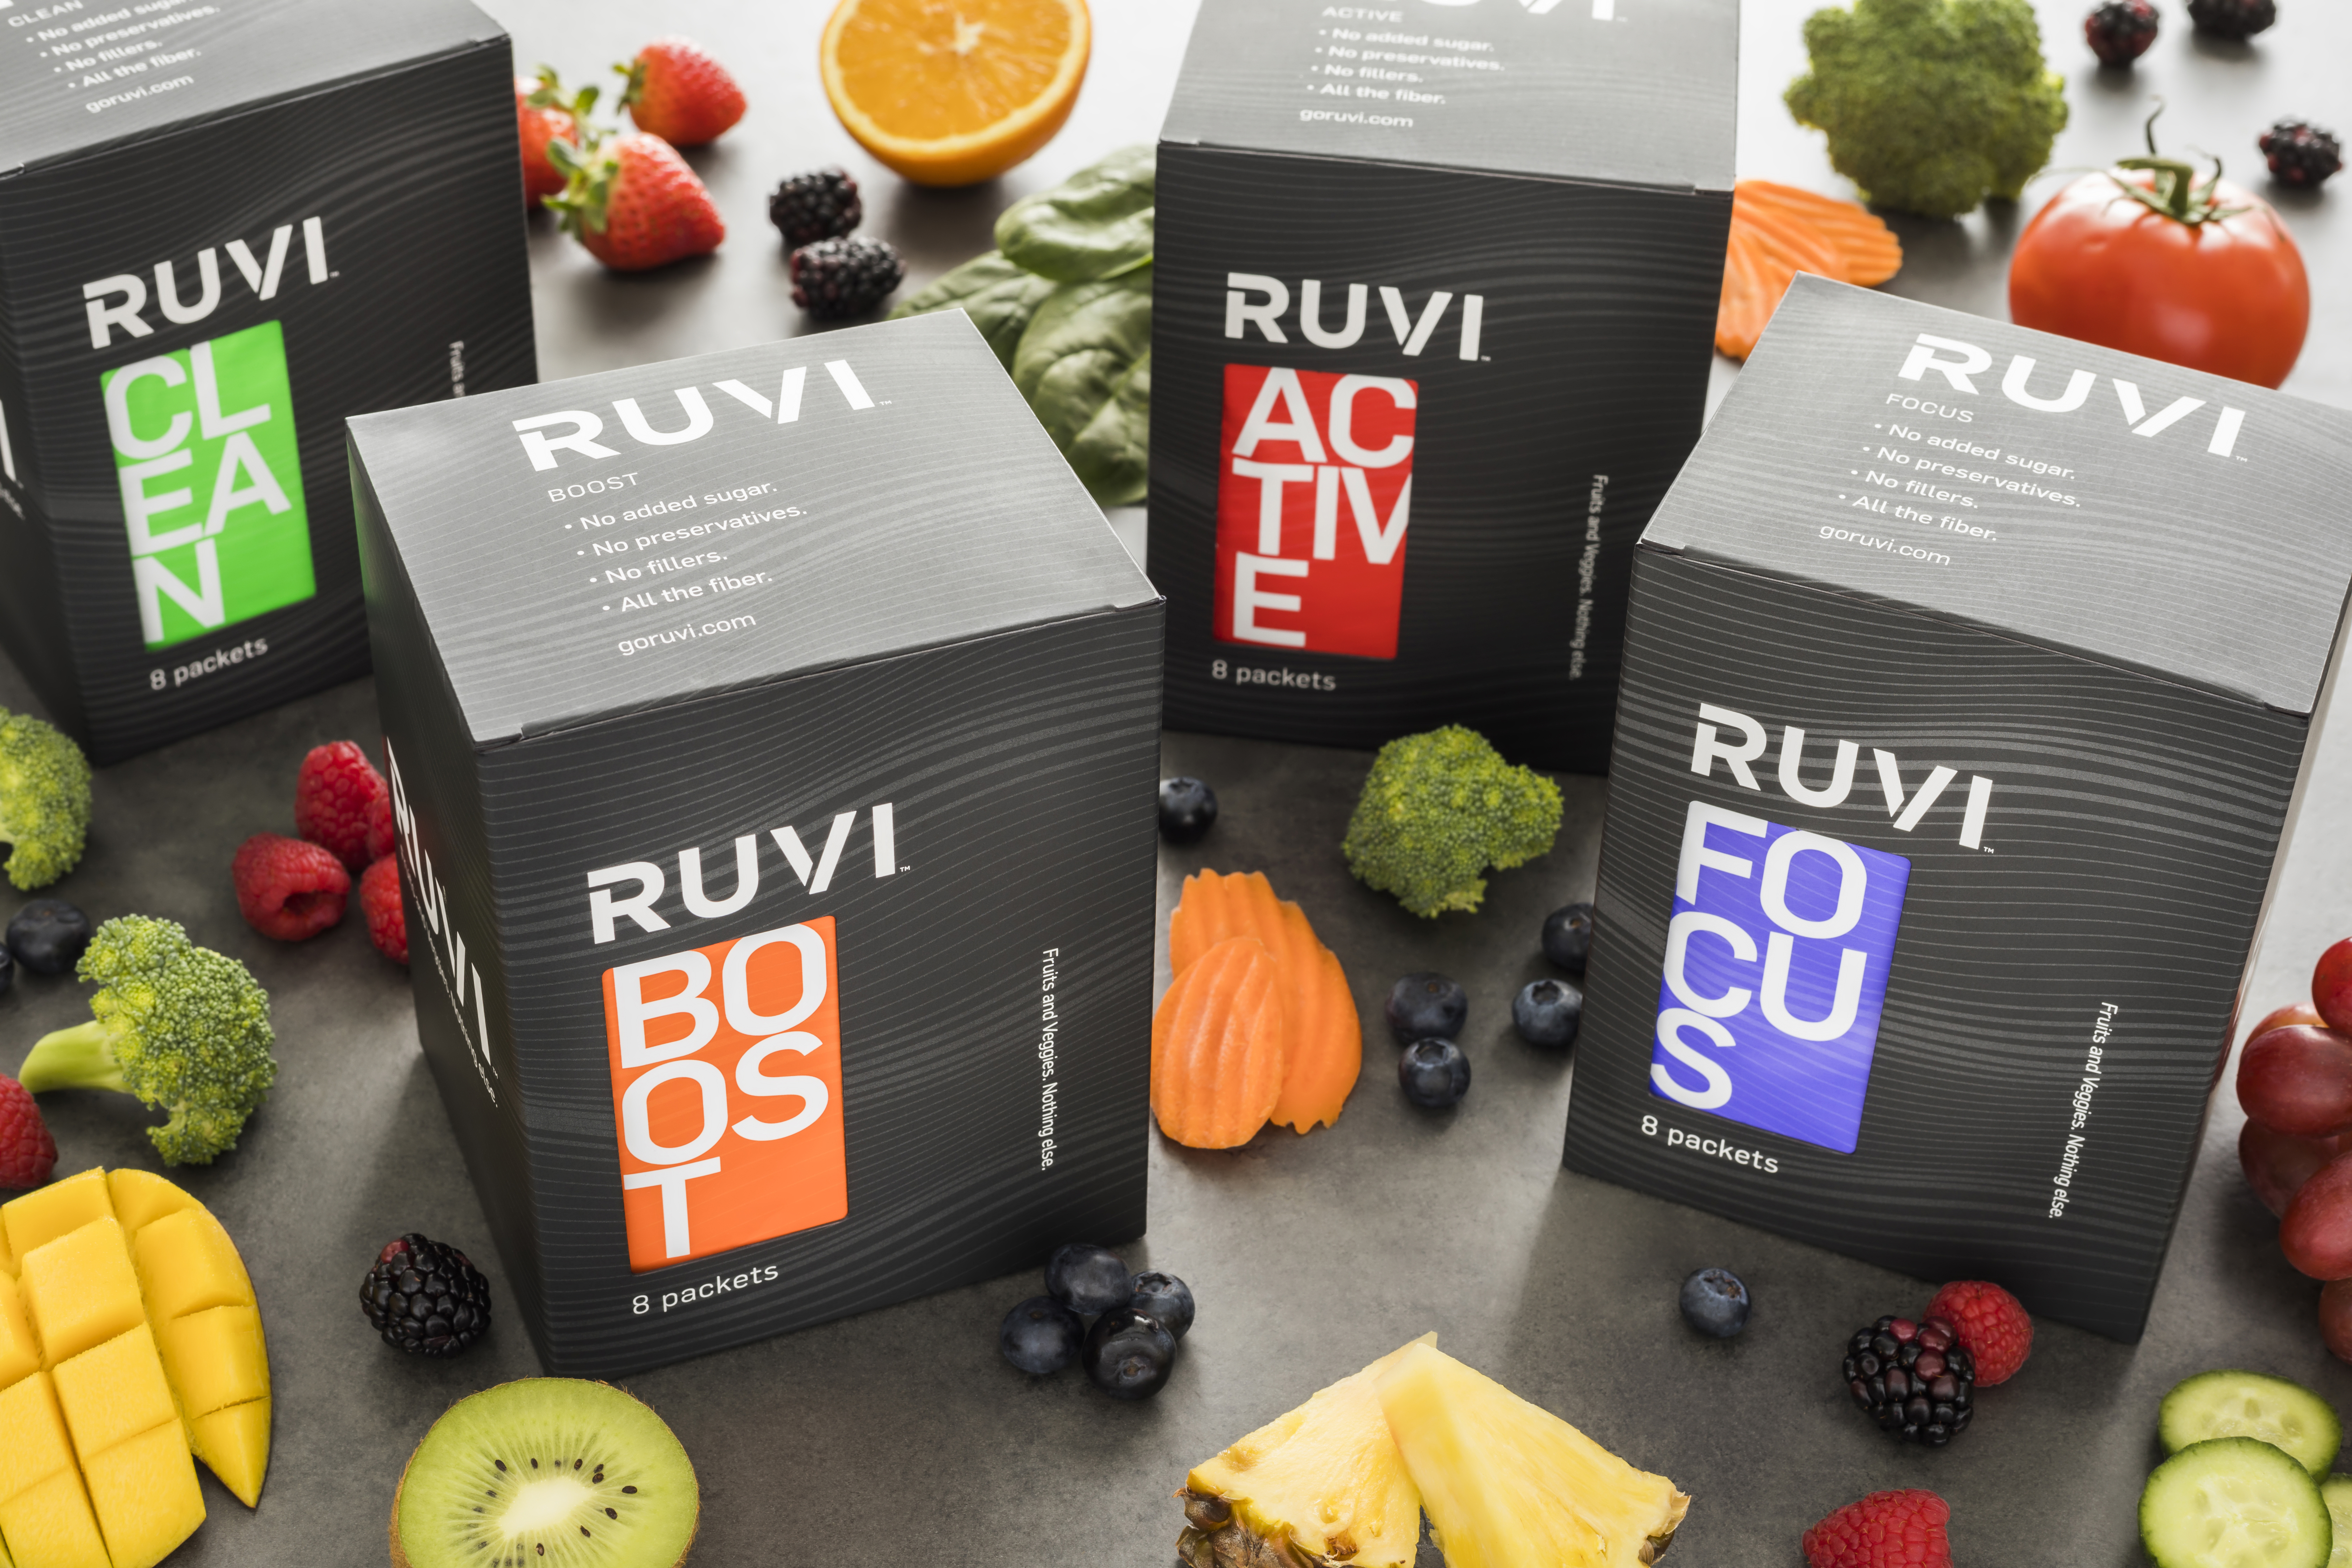 Ruvi gives you 26 whole fruits and veggies. Nothing else.